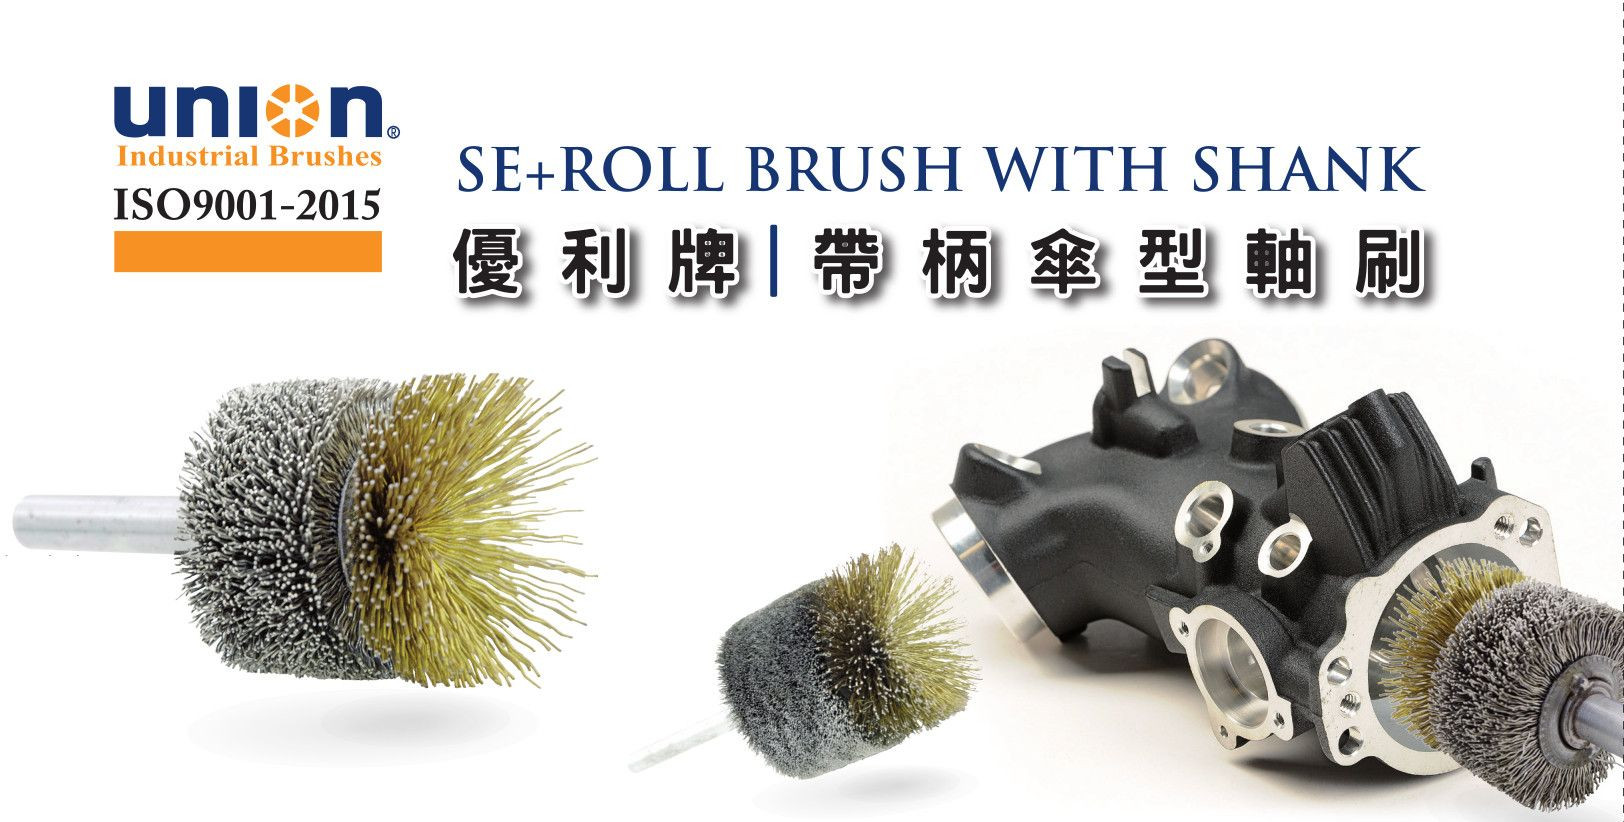 UNION Umbrella shape Roll Brush with shank  High density wire brush for die grinders and drills